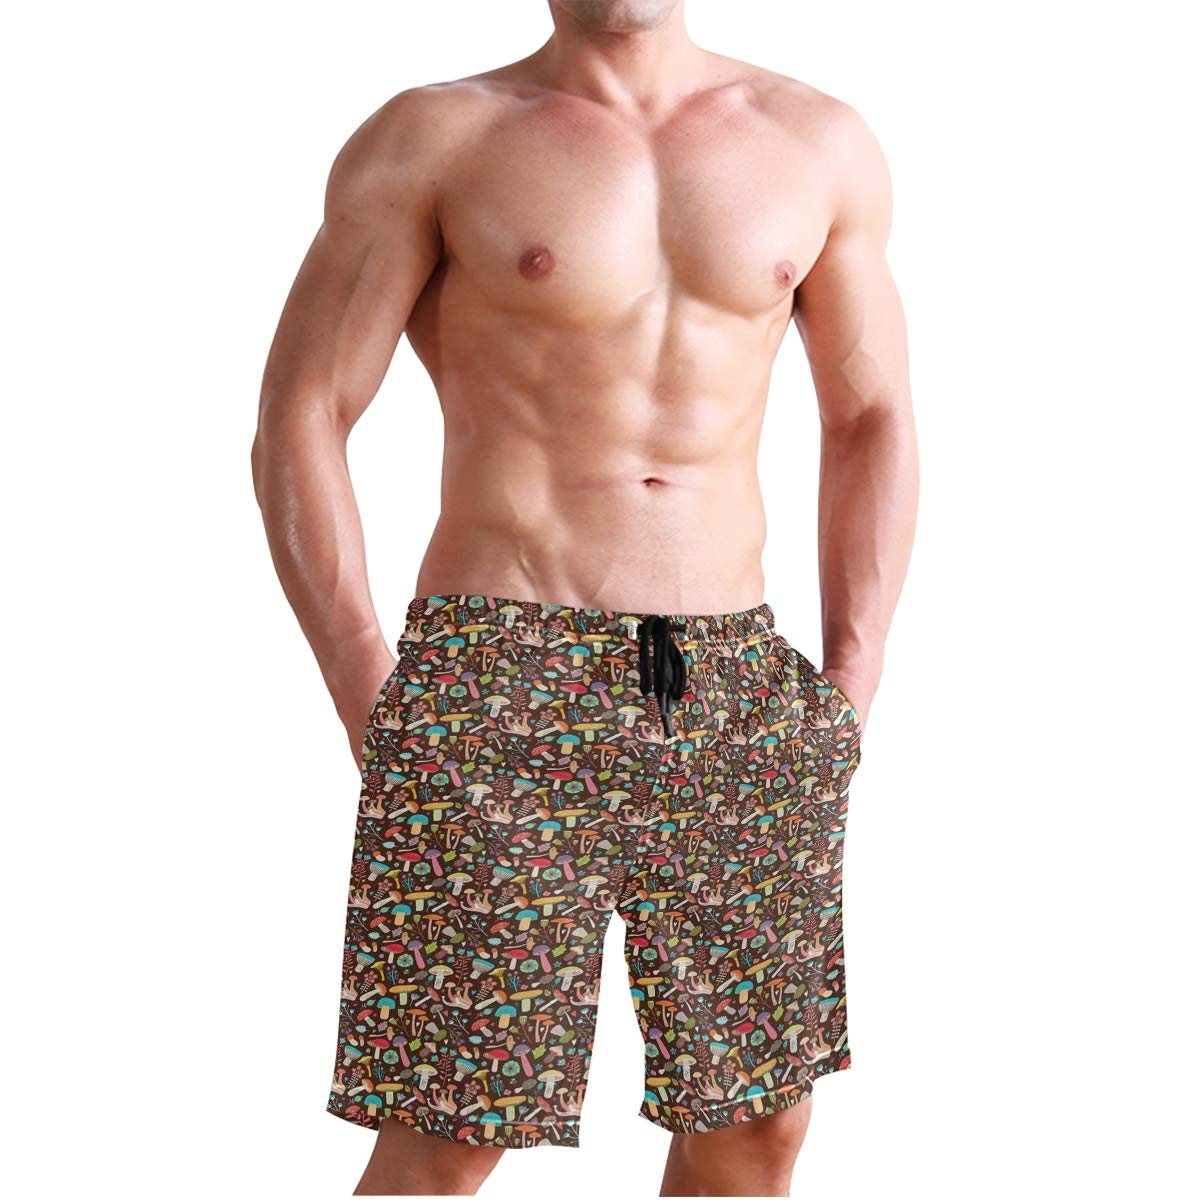 Dark Toned Background with an Assortment of Fungi Flowers and Foliage Leave Casual Swim Trunks All